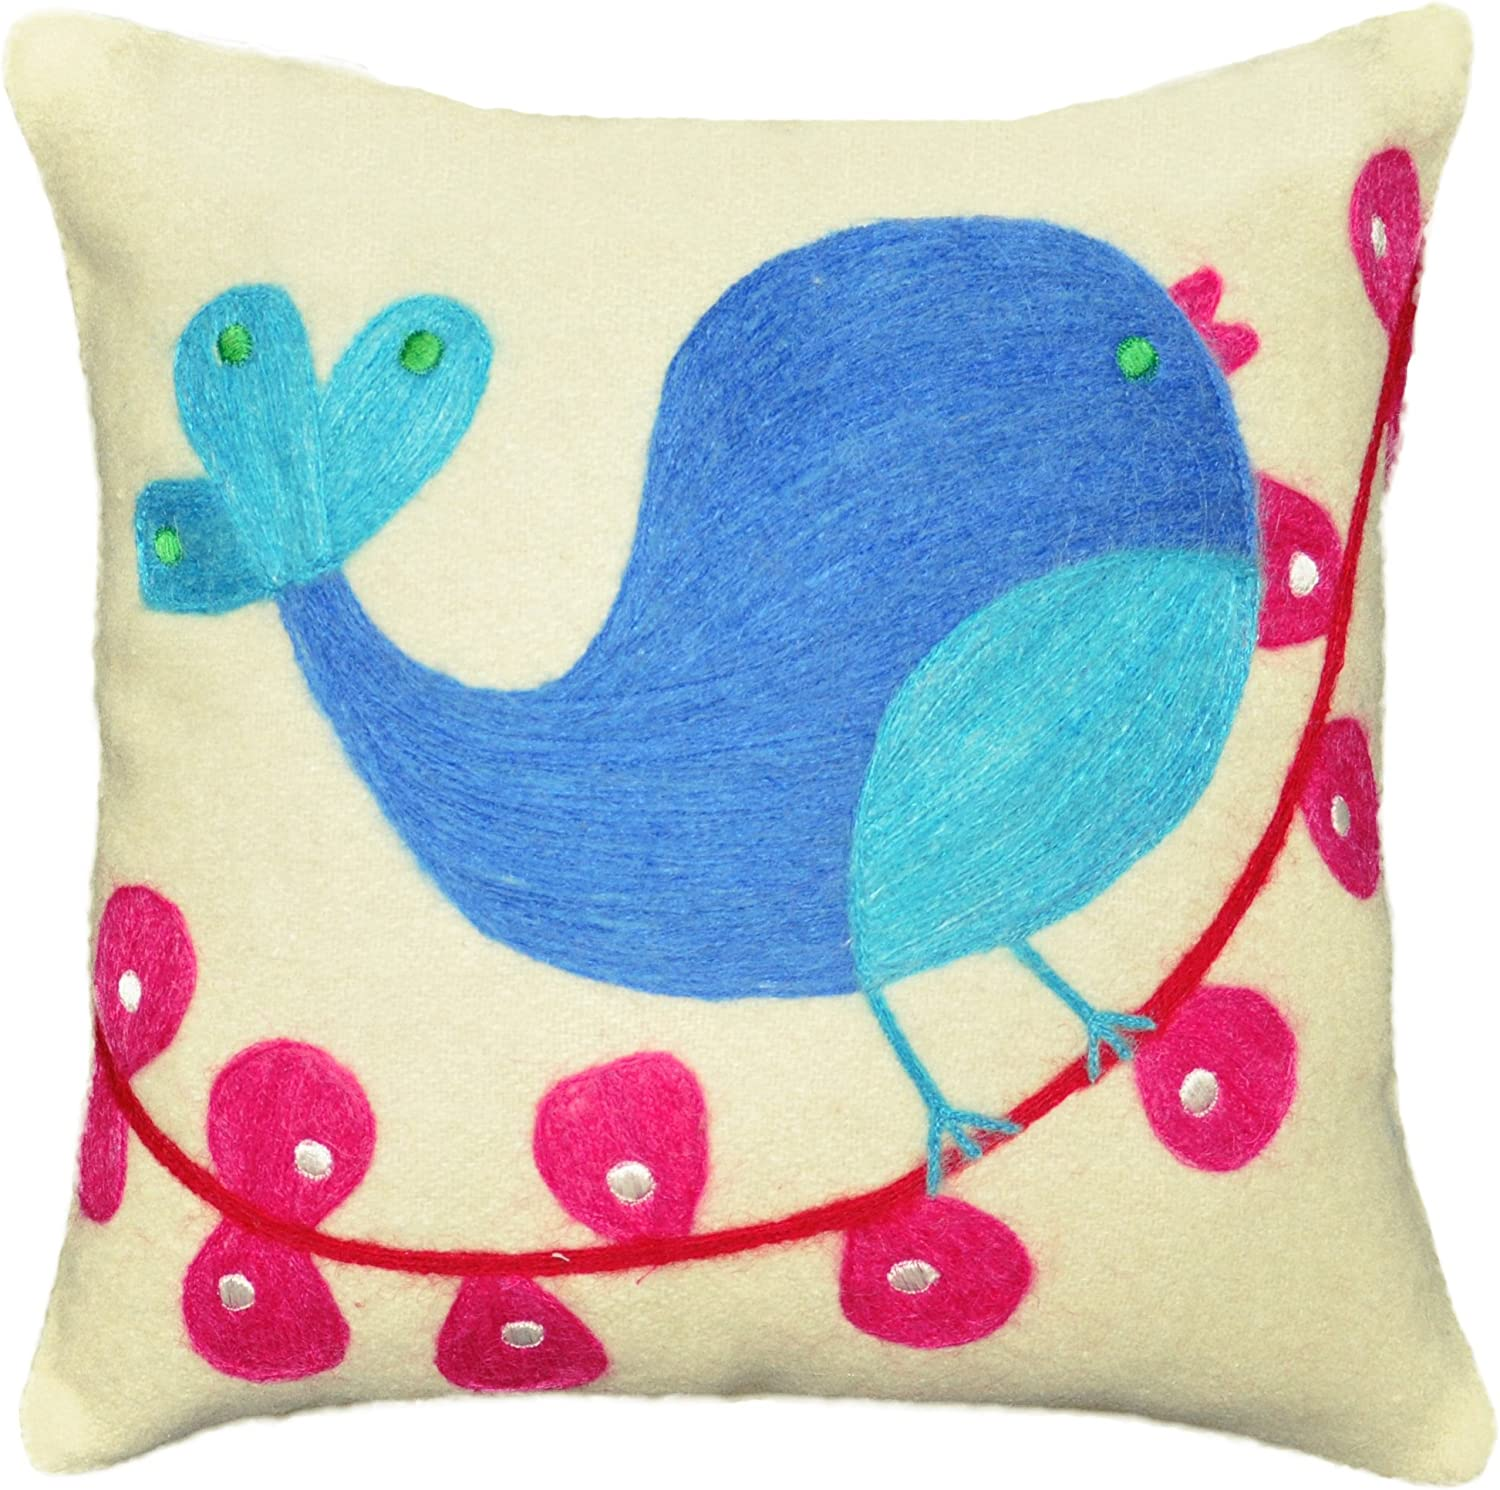 Be-You-tiful Home Tweety Bird Wool Felt Pillow, 12 by 12-Inch